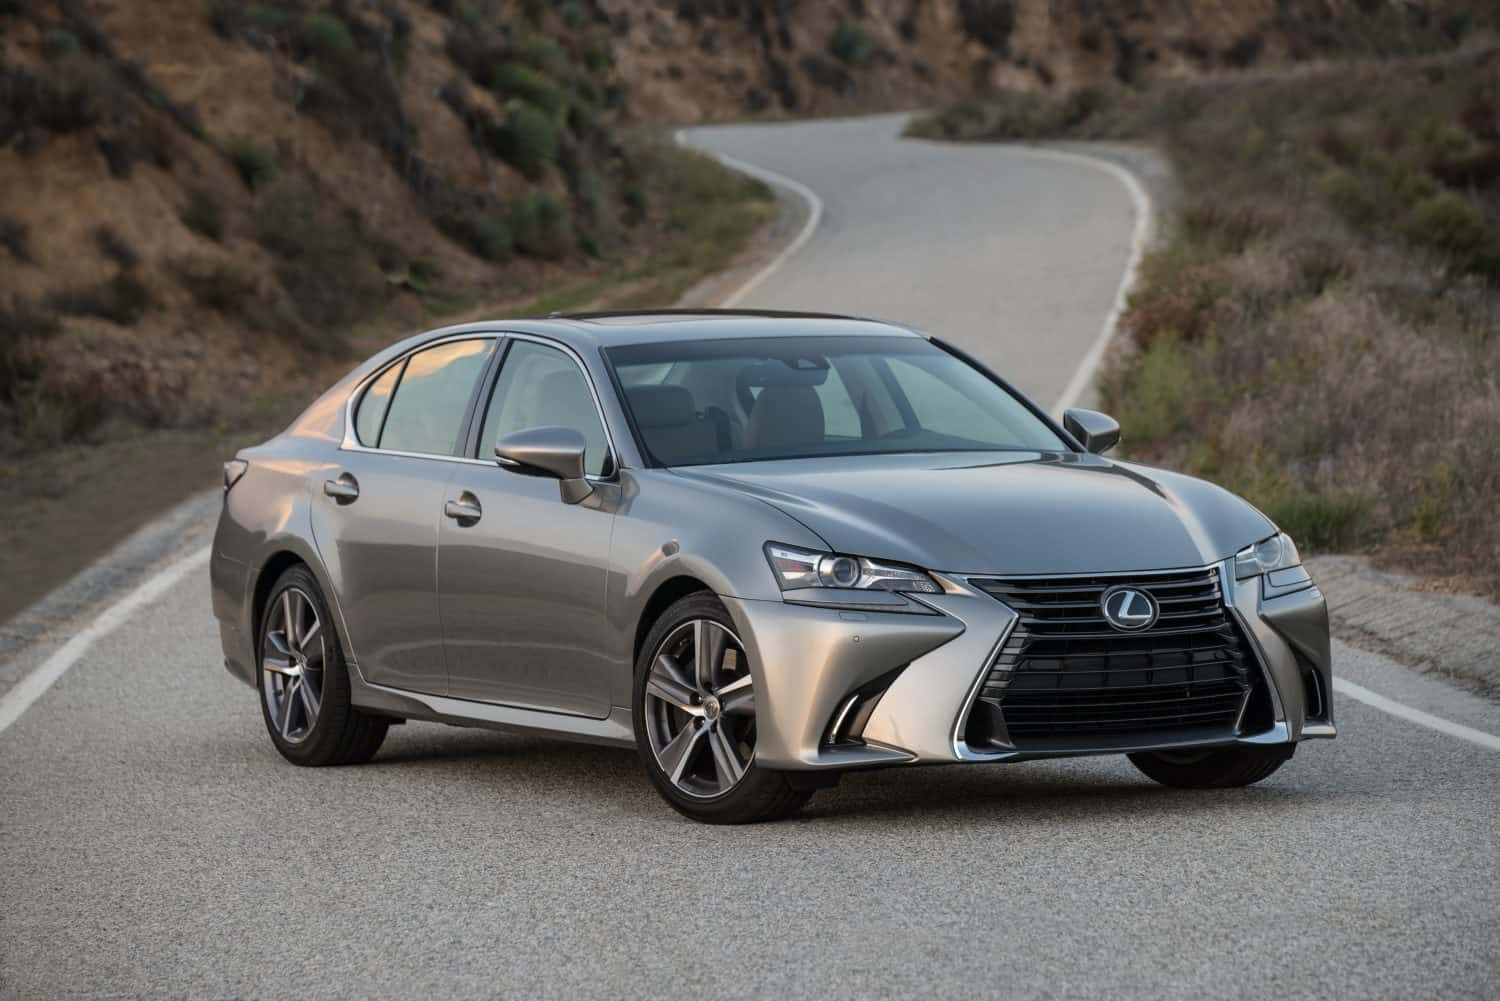 What Used Lexus Has the Least Amount of Problems?